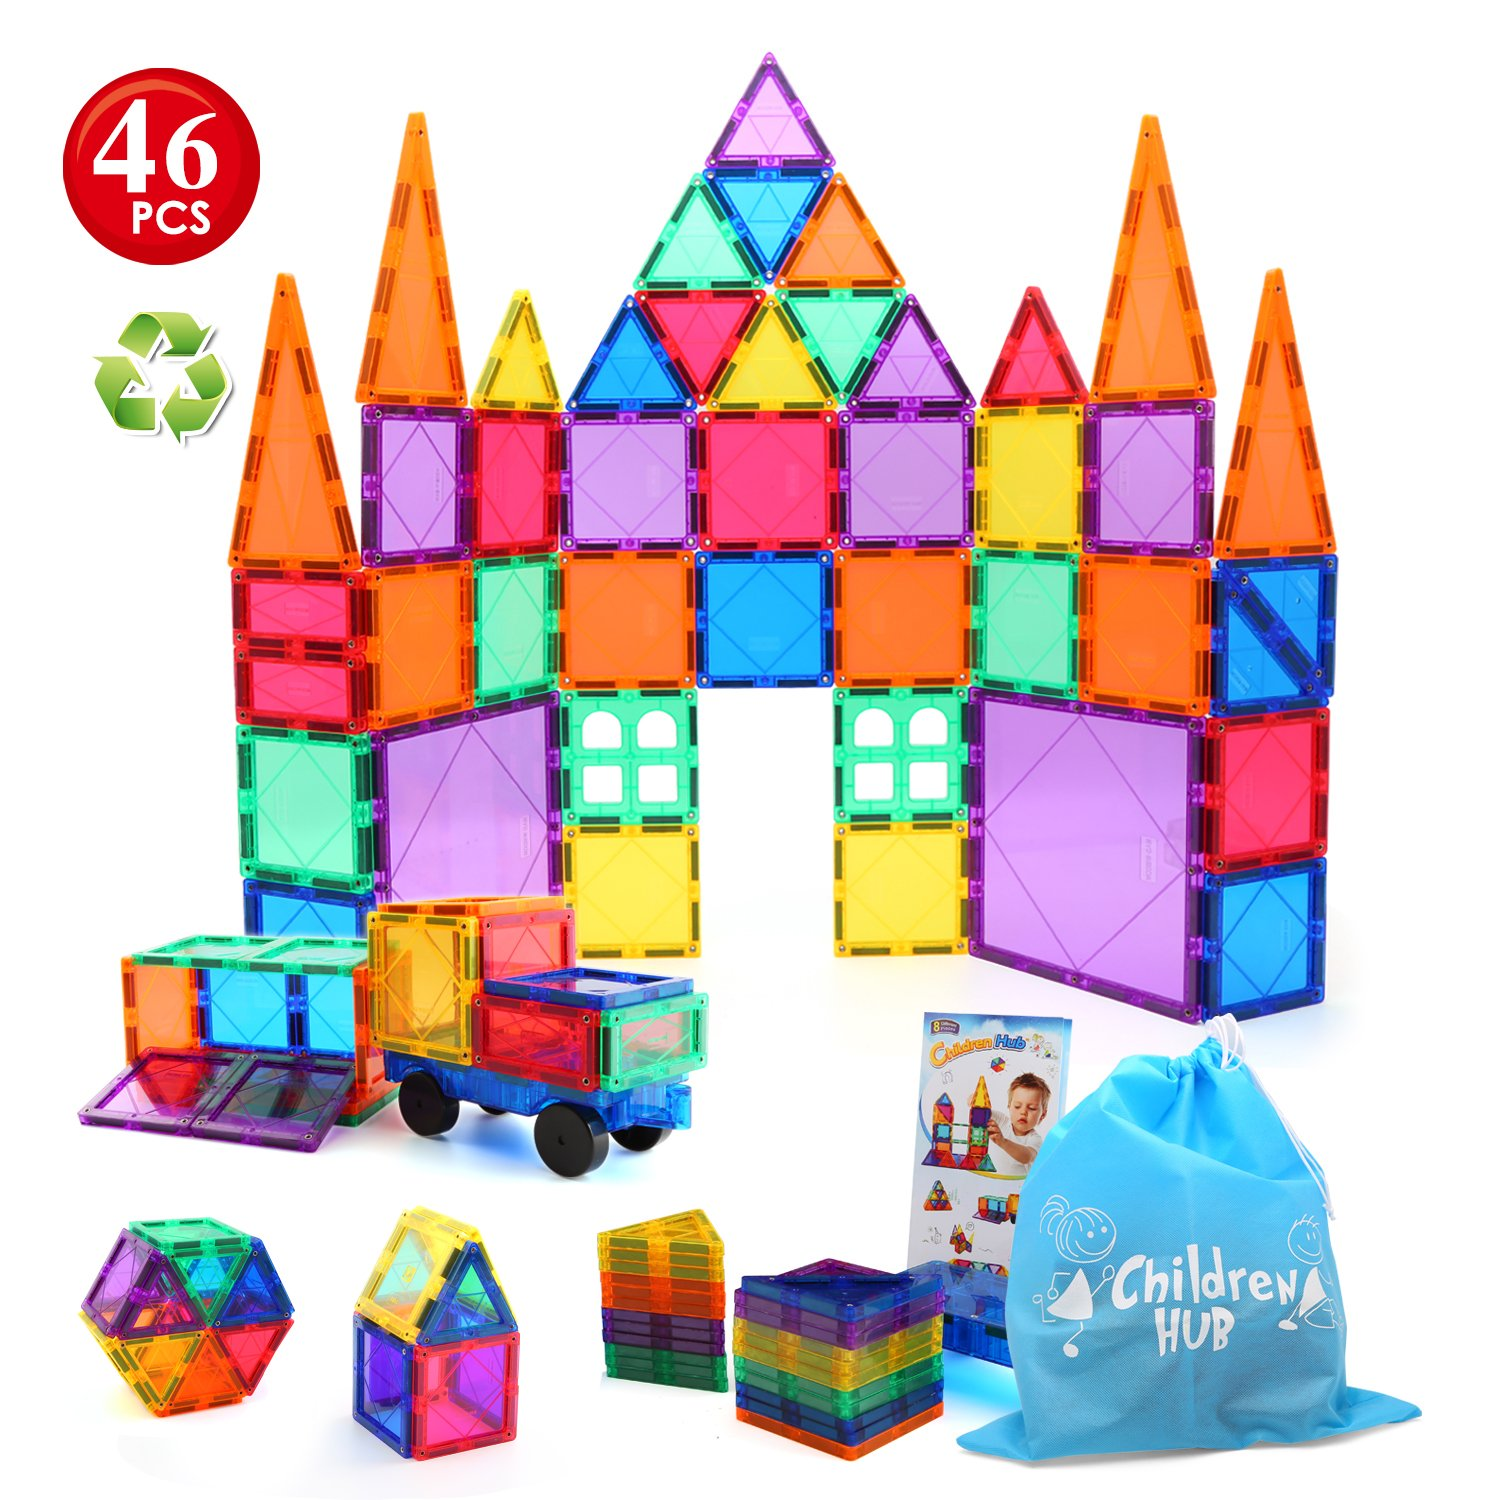 Children Hub 46pcs Magnetic Tiles Set - Building Construction Toys For Kids - Upgraded Version Review